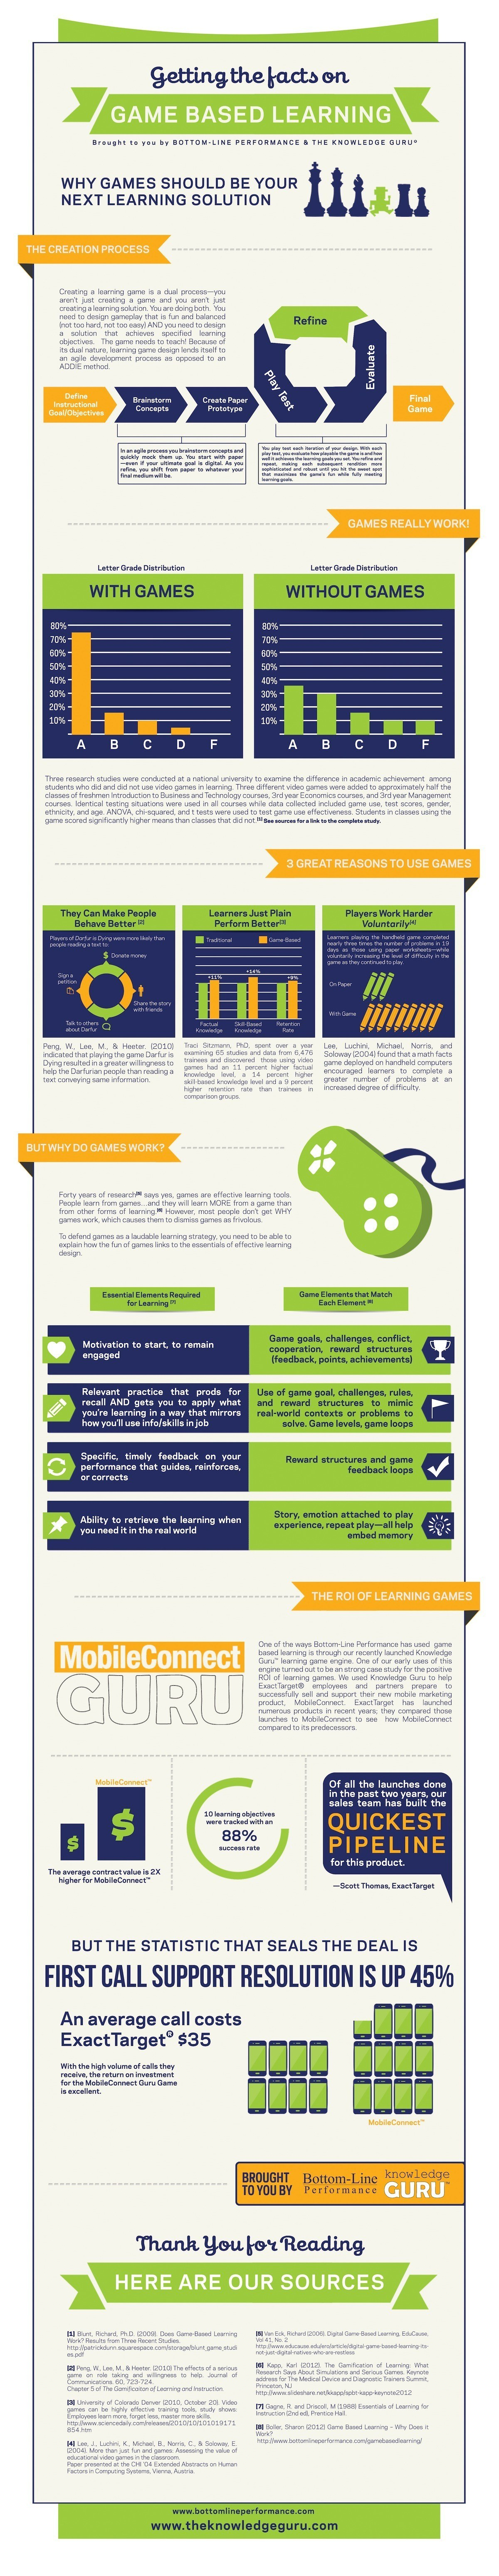 Getting the Facts on Game Based Learning (INFOGRAPHIC) thumbnail